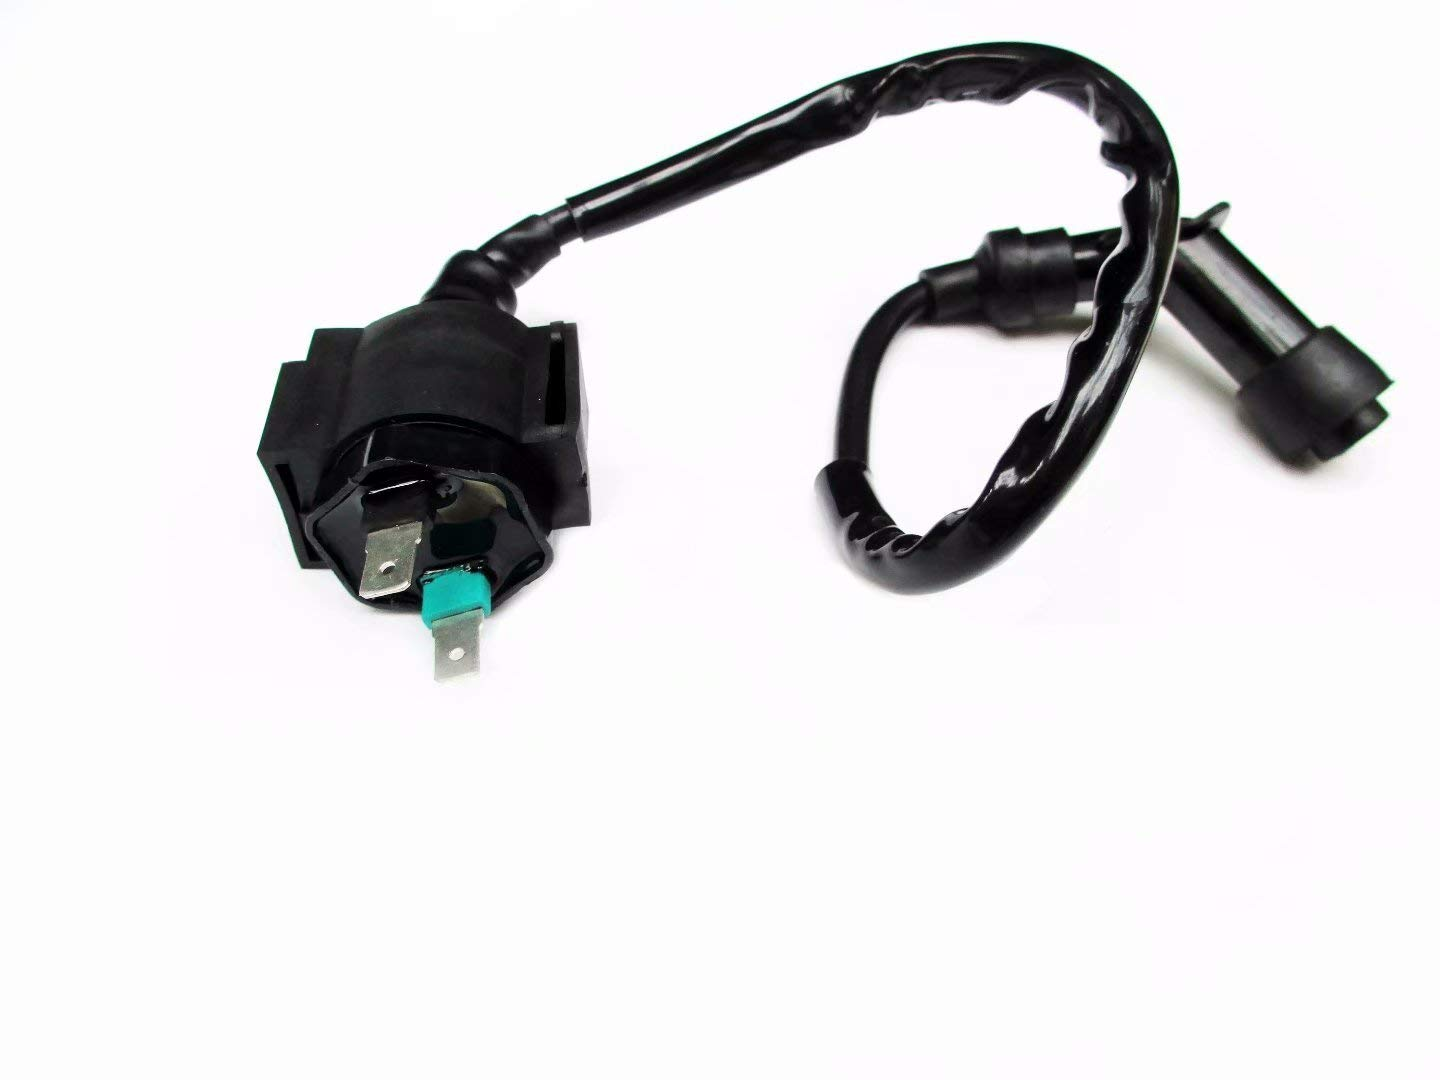 High Performance Ignition Coil Fits Honda 200 Atc200S Atc 200S 1985 1986 Atv High Performance Ignition Coil